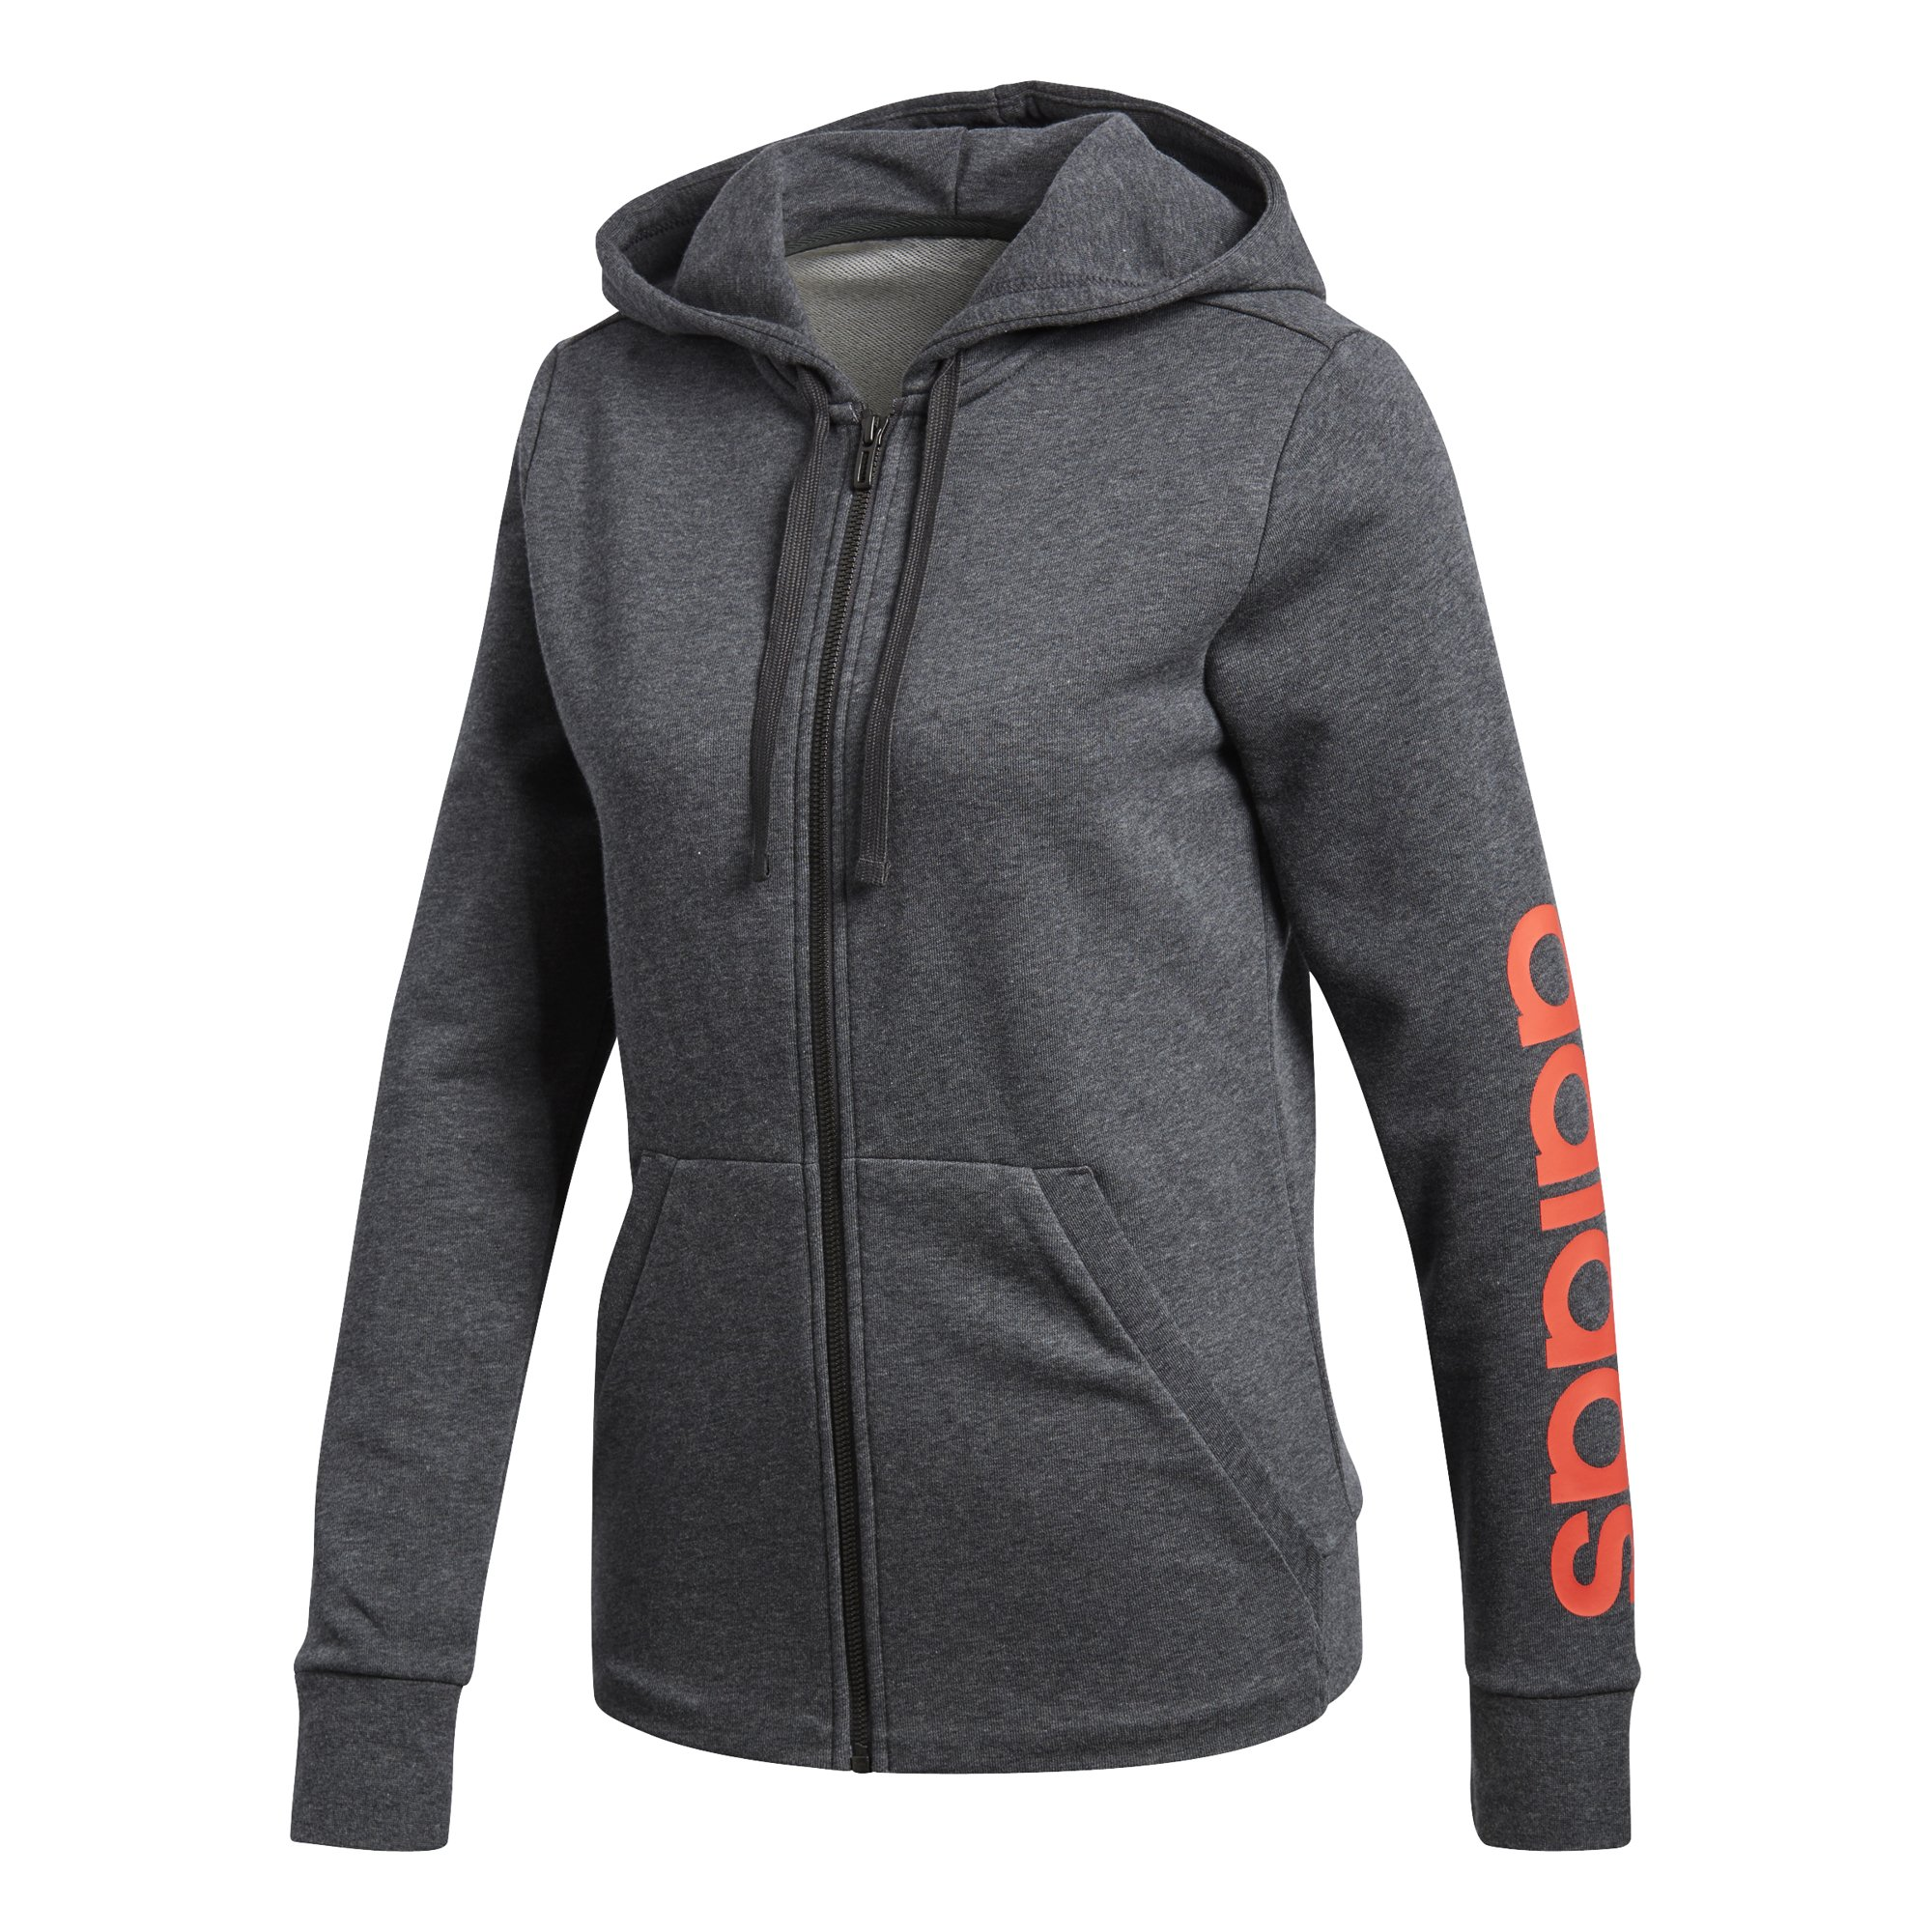 adidas Women's Essentials Linear Full Zip Fleece Hoodie, Dark Grey Heather/Real Coral, X-Small